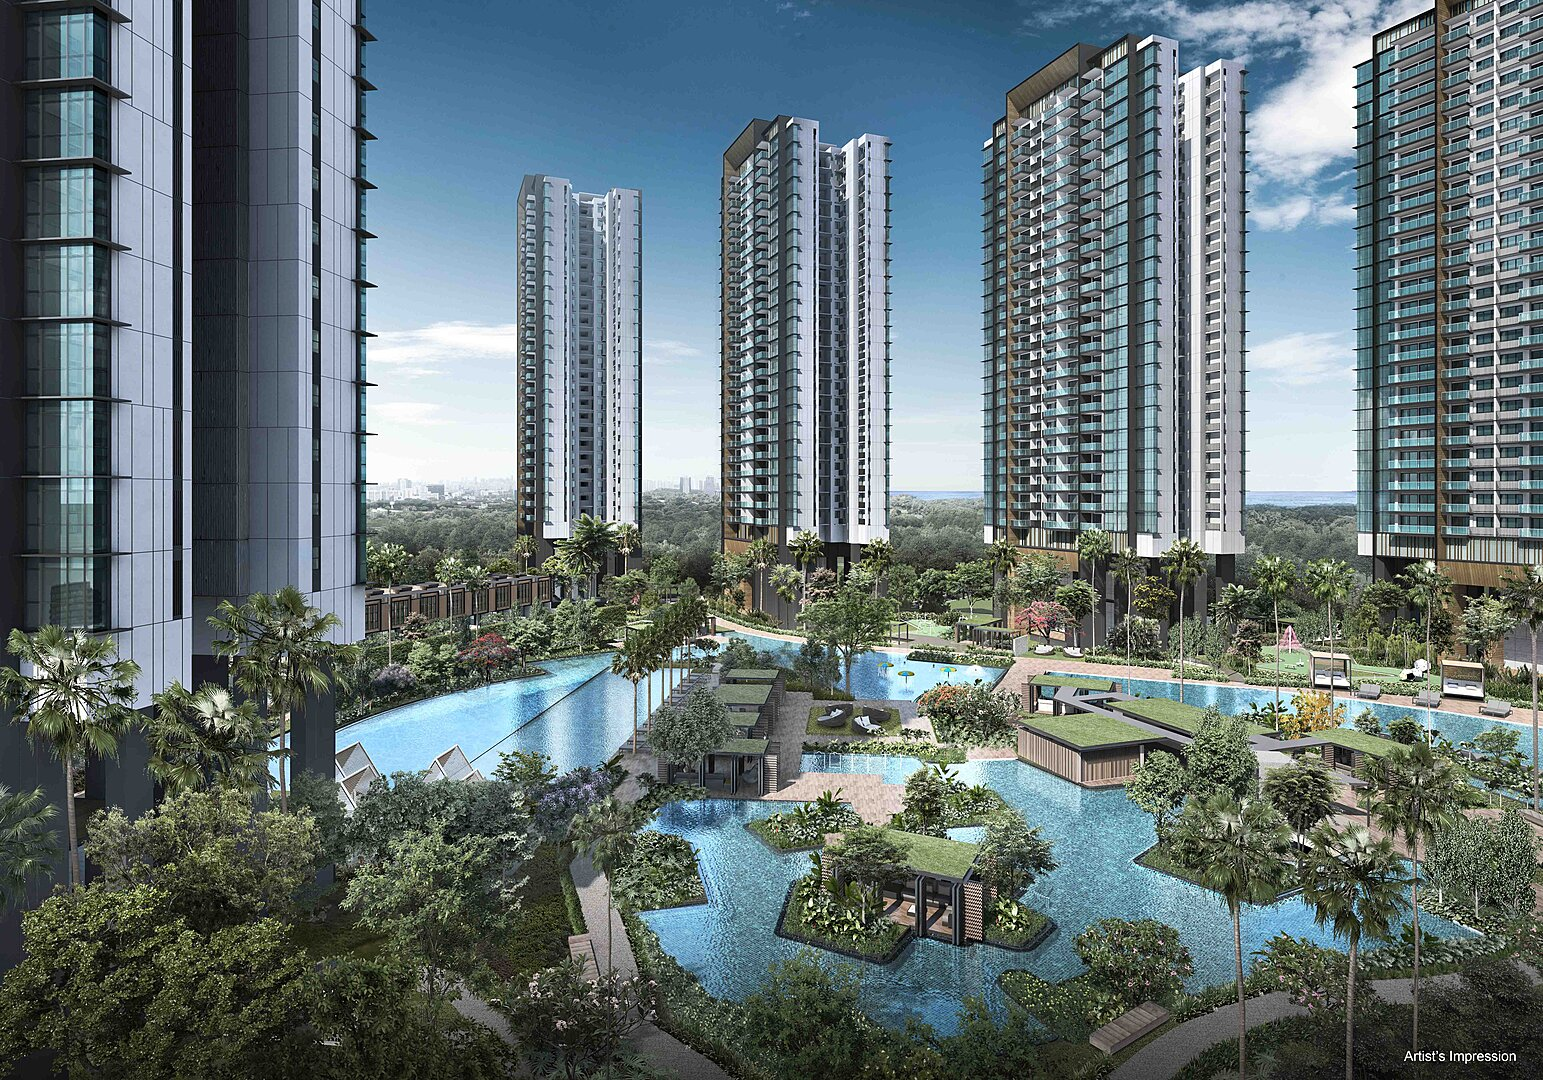 Normanton Park 鑫悦府 by Kingsfort with low entry price and high potential